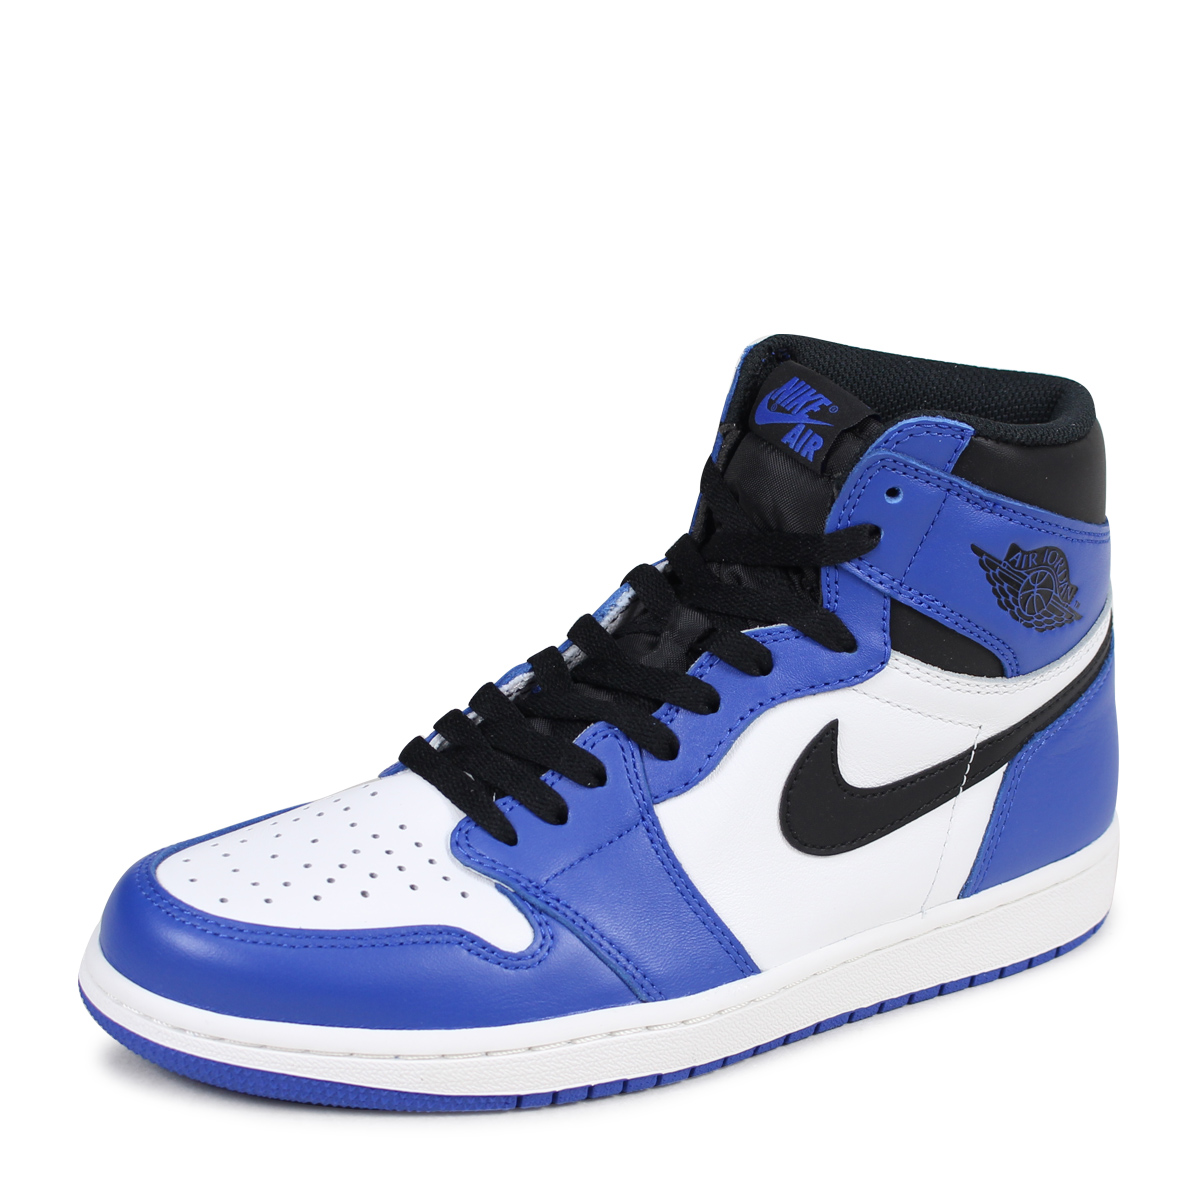 305bf60d4366 NIKE AIR JORDAN 1 RETRO HIGH OG GAME ROYAL Nike Air Jordan 1 nostalgic high  sneakers men 555